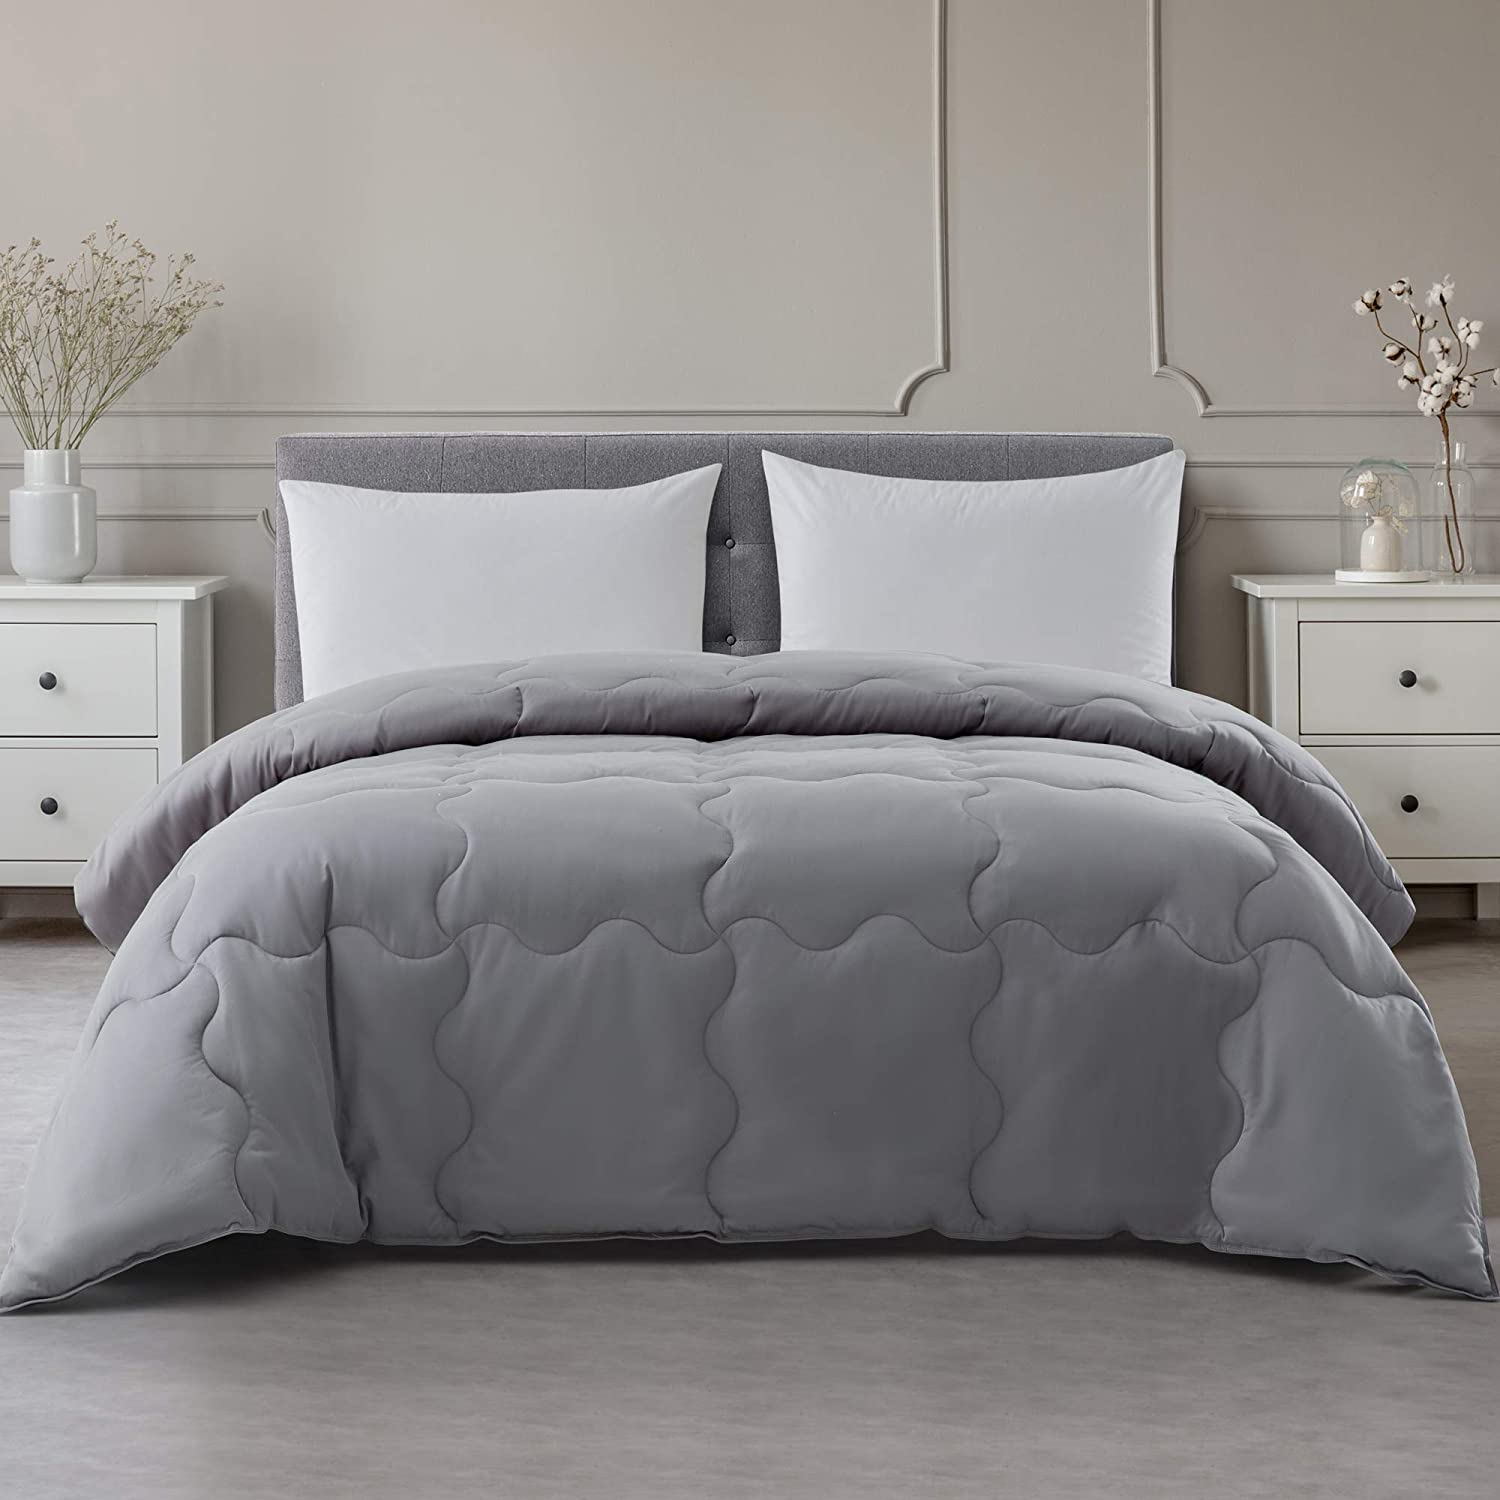 Reflections Max 73% OFFicial mail order OFF 500 Thread Count Scalloped Full Queen Comforter Grey